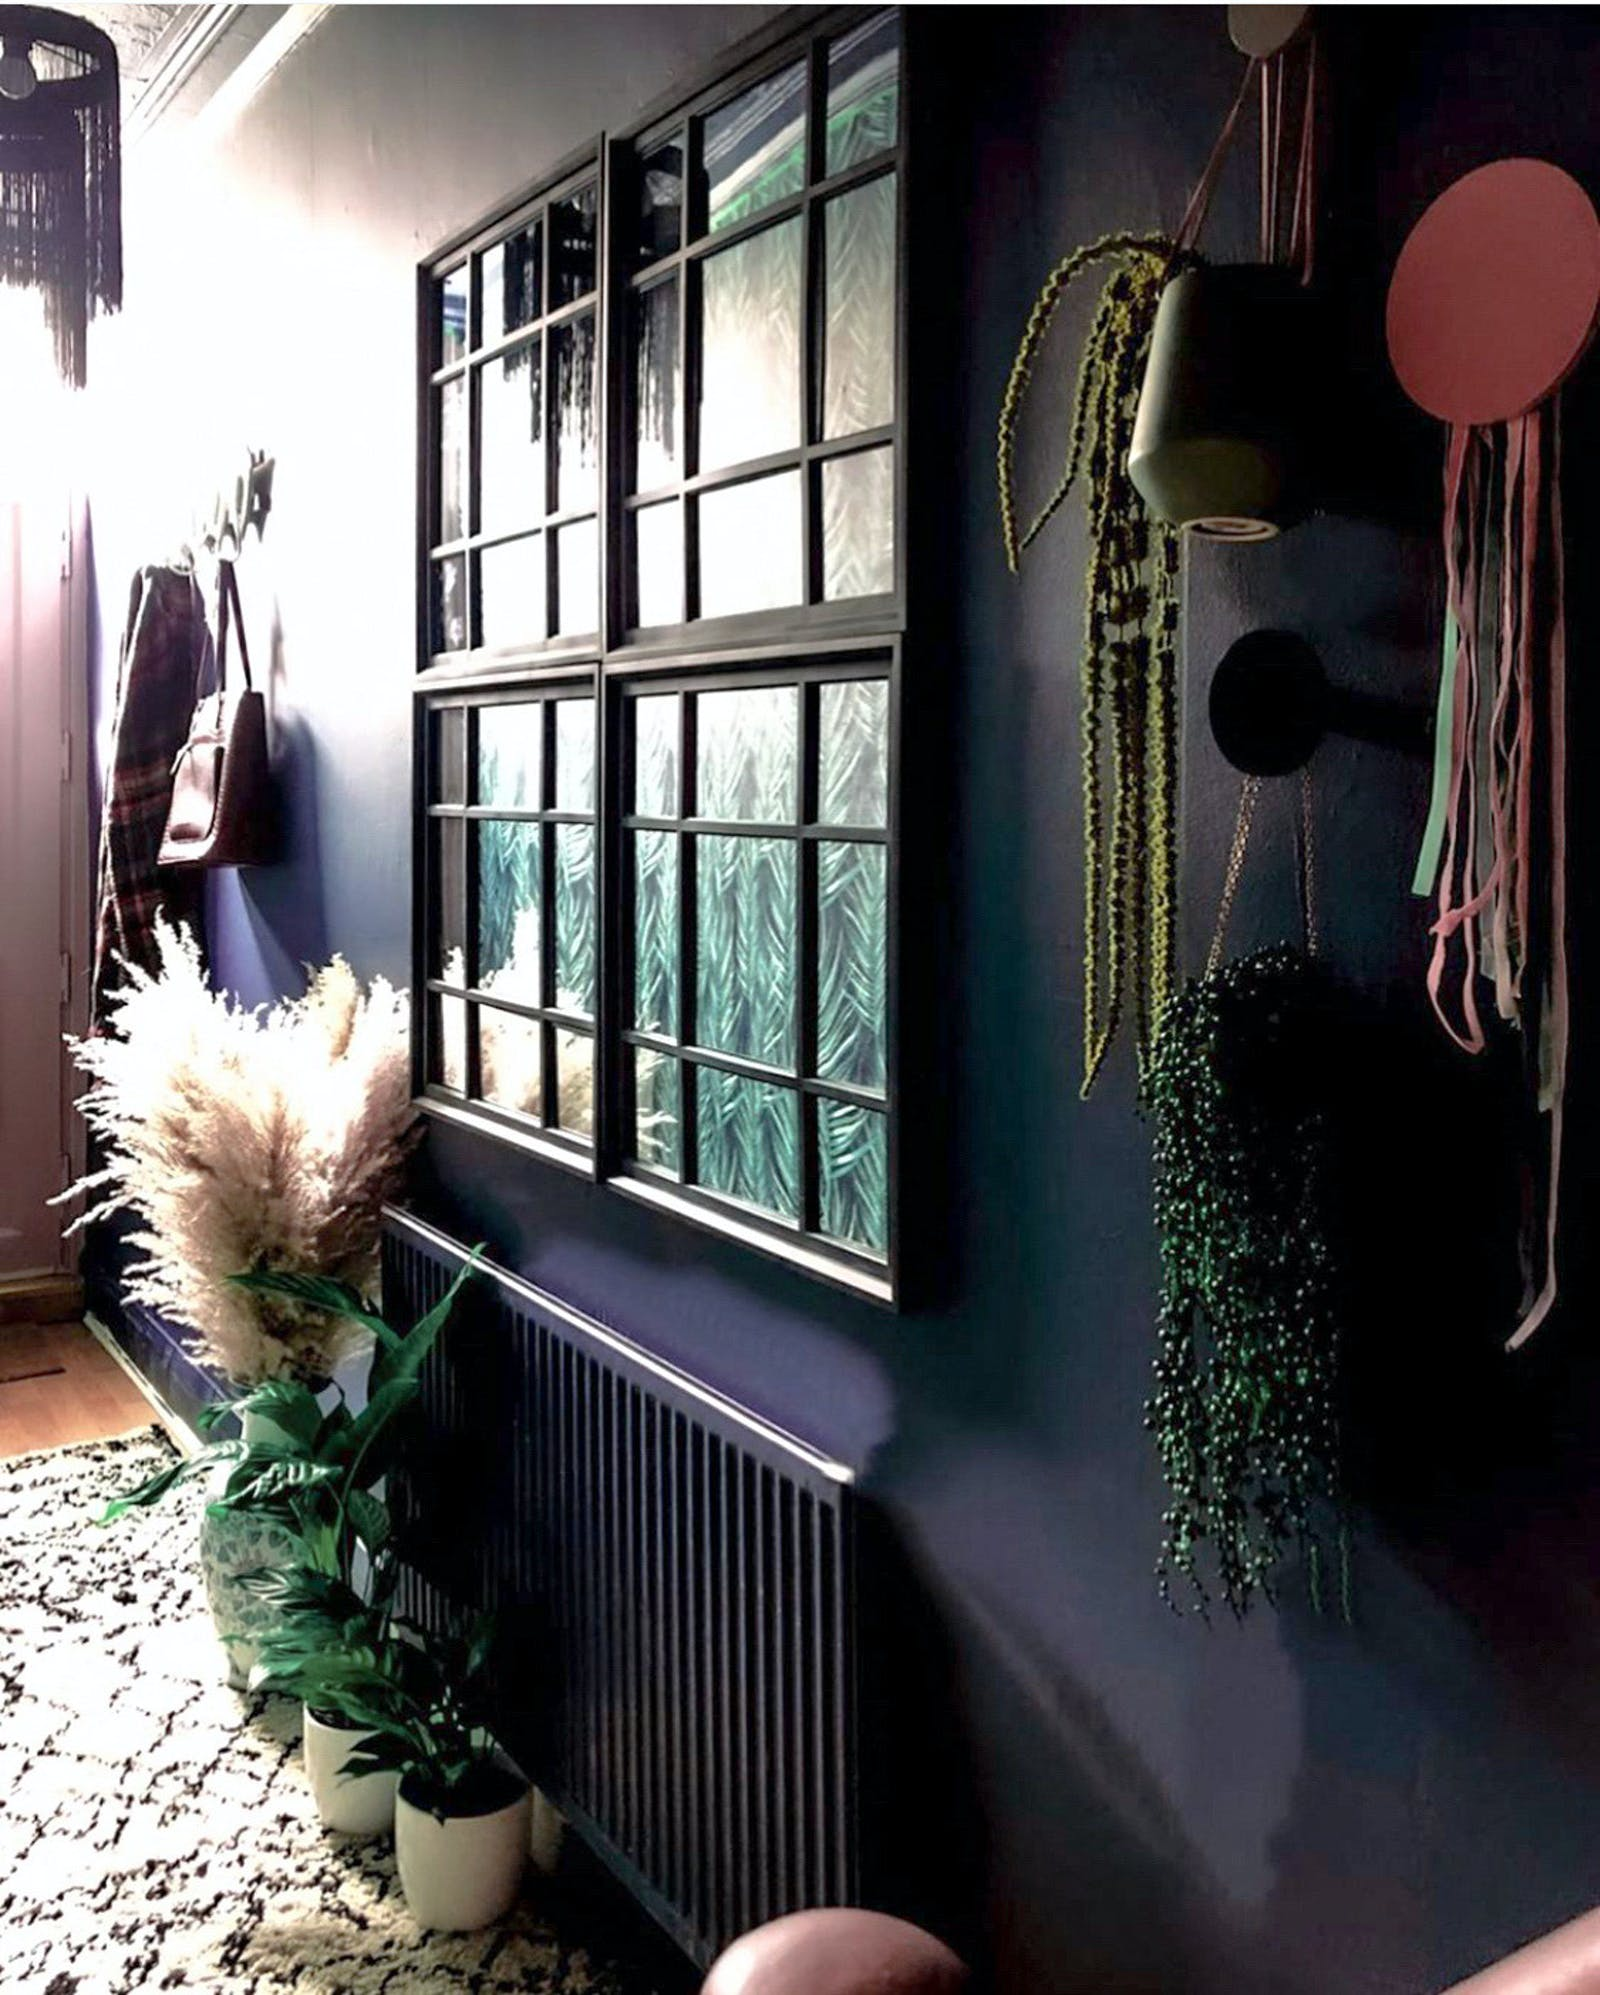 Hallway painted in black with a lot of greenery